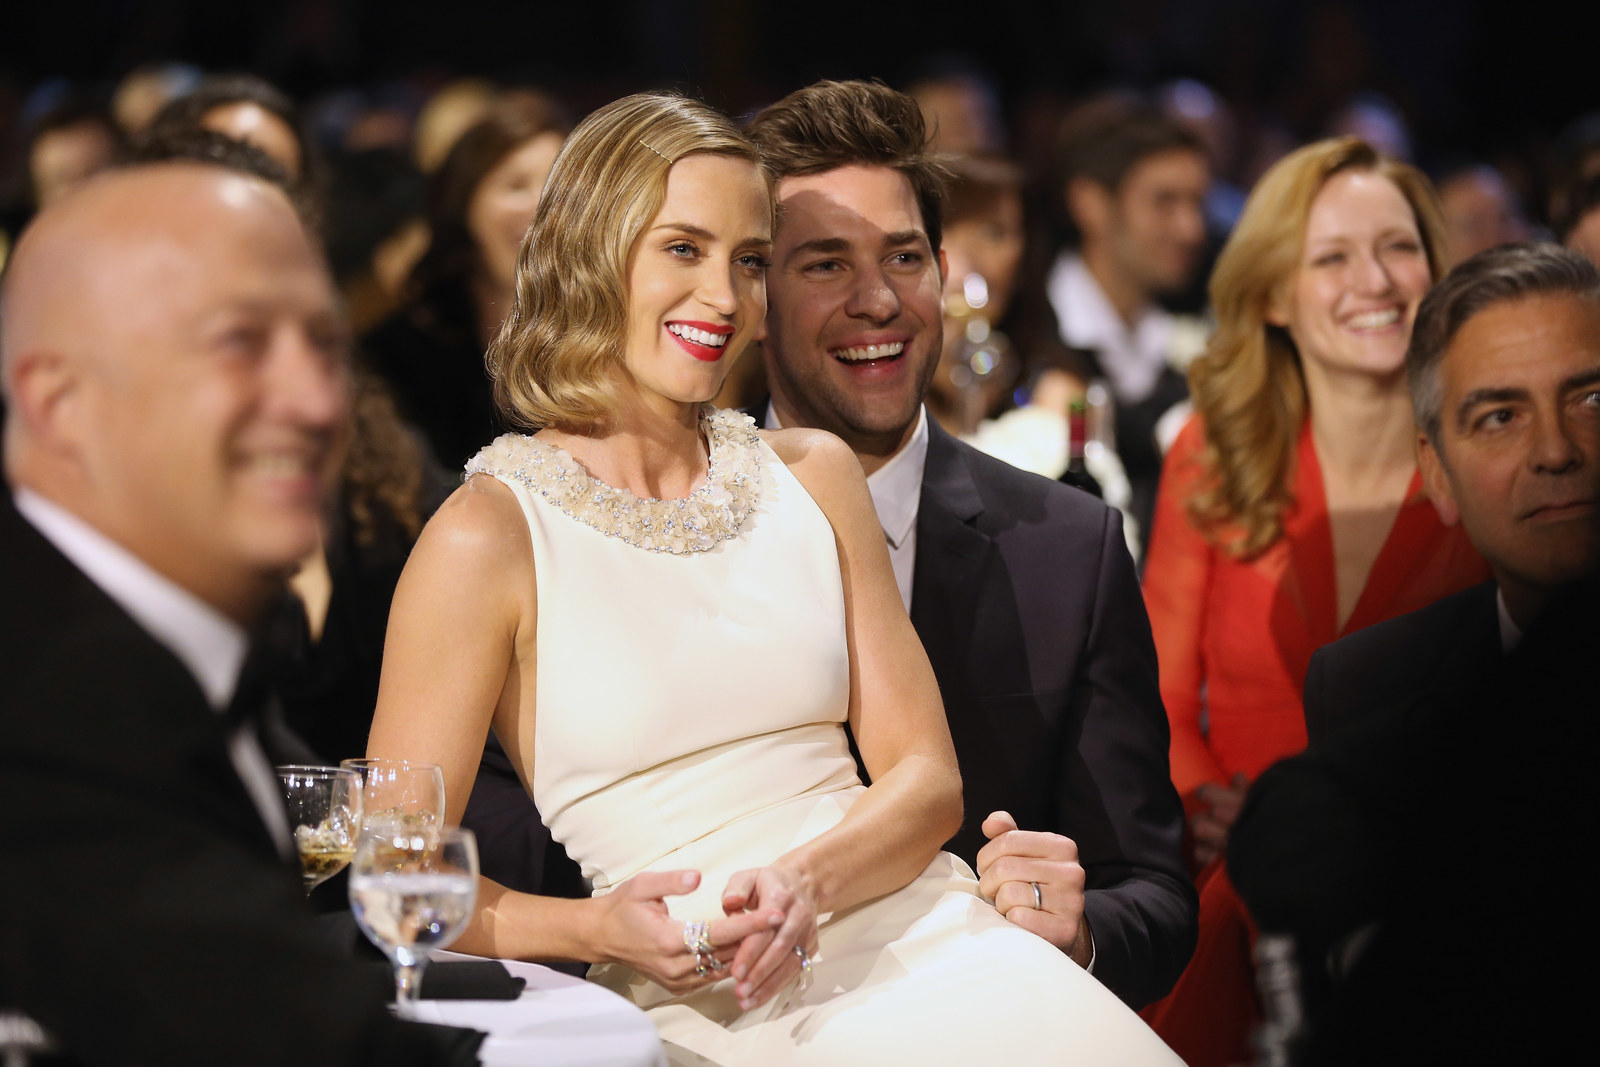 Emily Blunt and John Krasinski are one of the cutest couples in Hollywood.